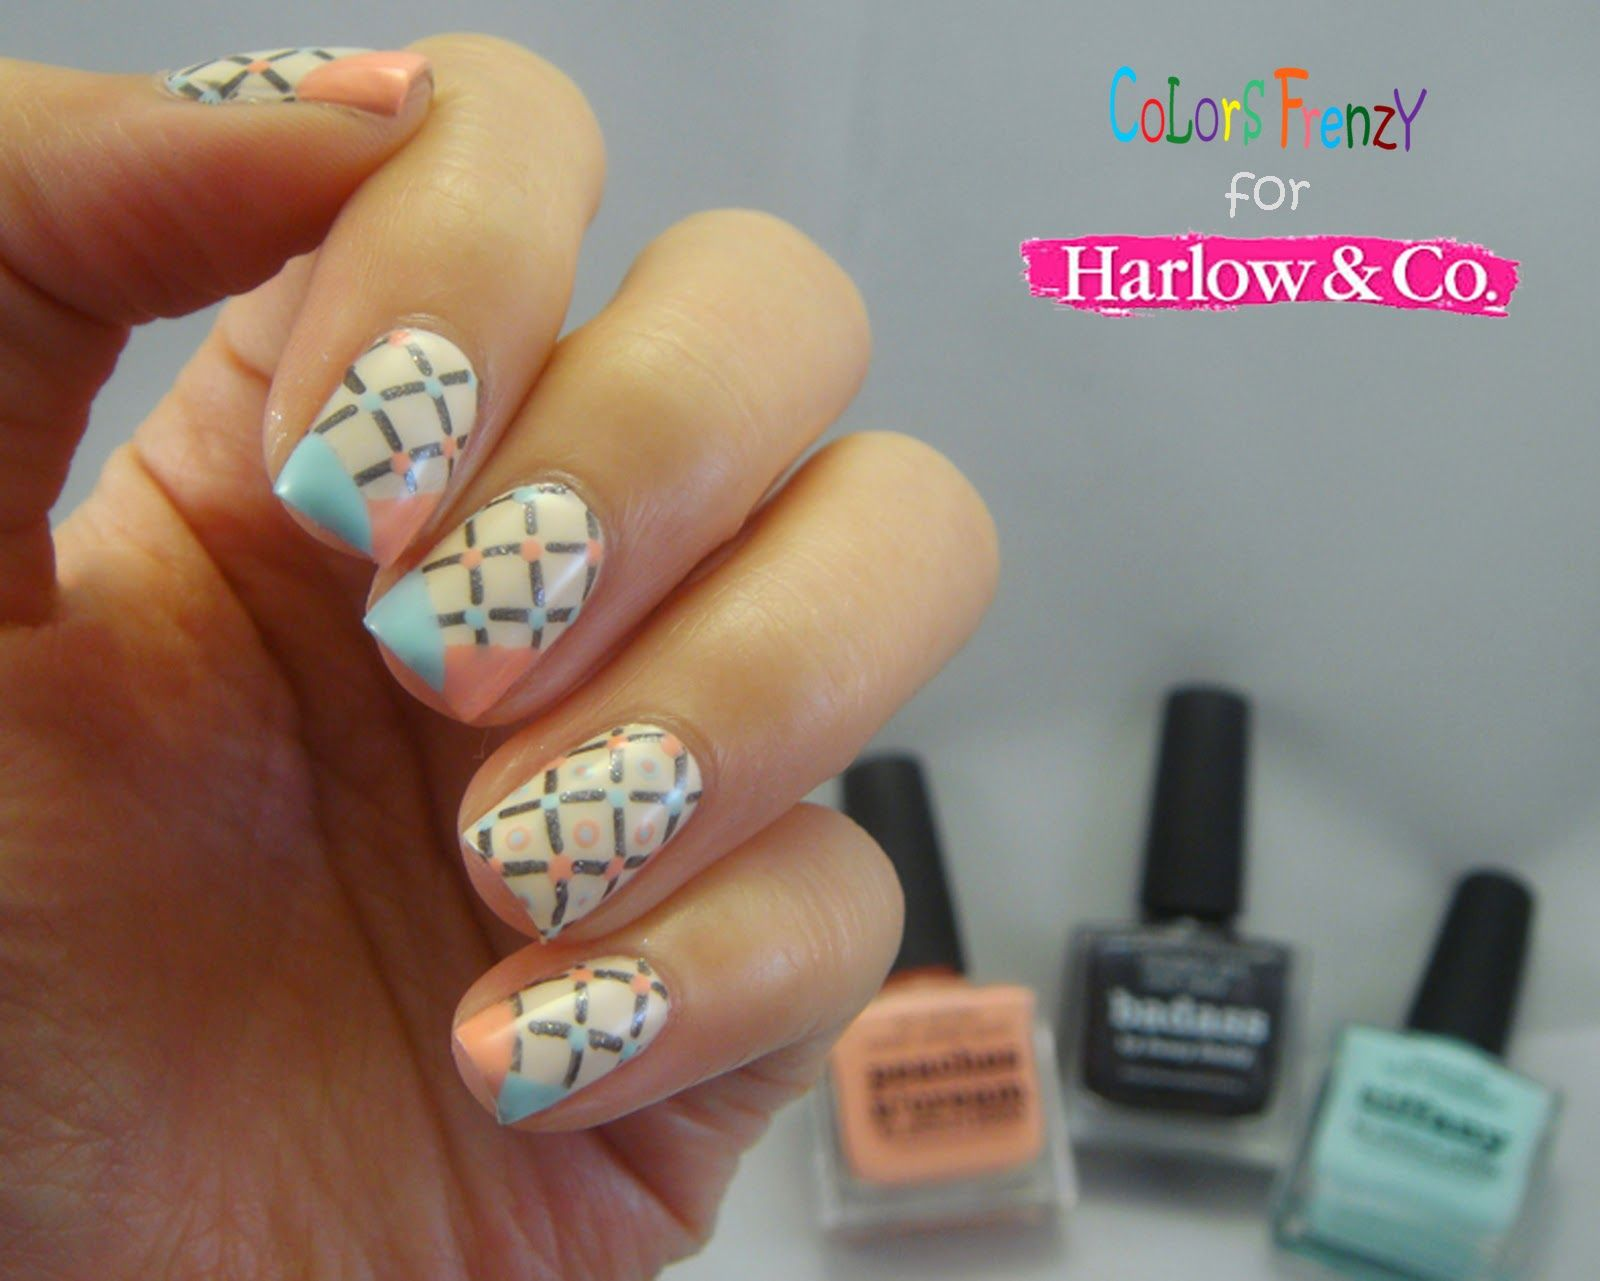 Color Frenzy for Harlow & Co